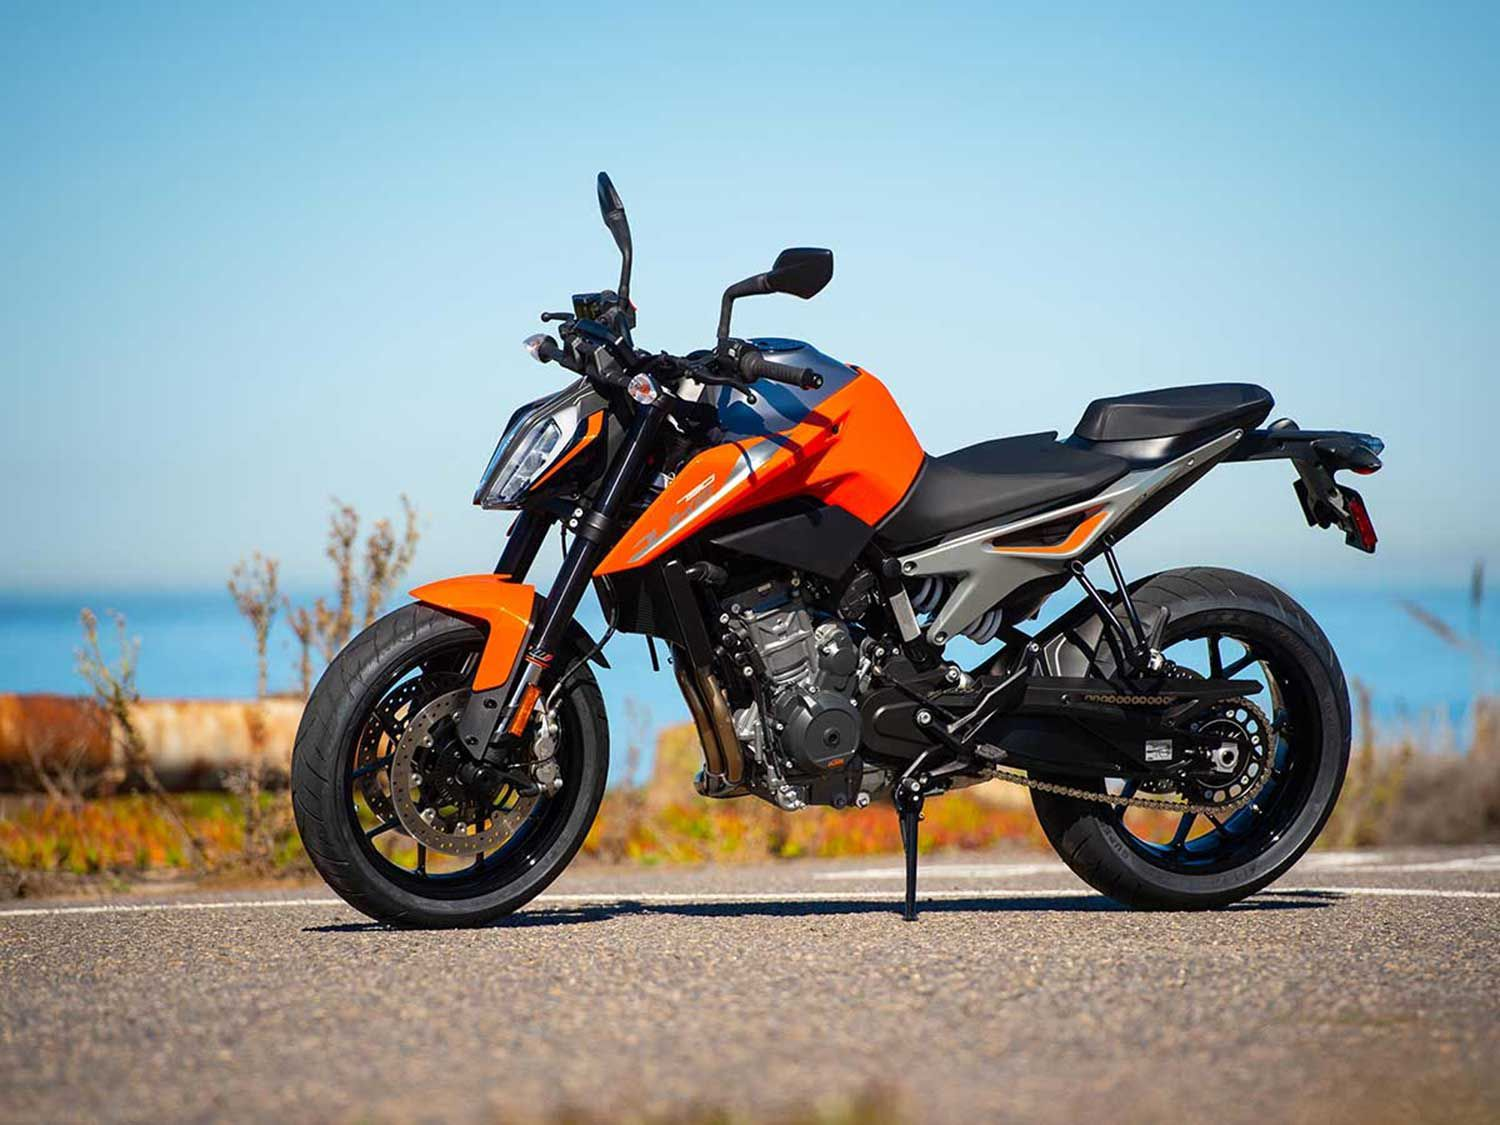 <strong>KTM 790 GT</strong> <br /> The LC8c engine first found in the 790 Duke would make a great powerplant for a middleweight sport-tourer.